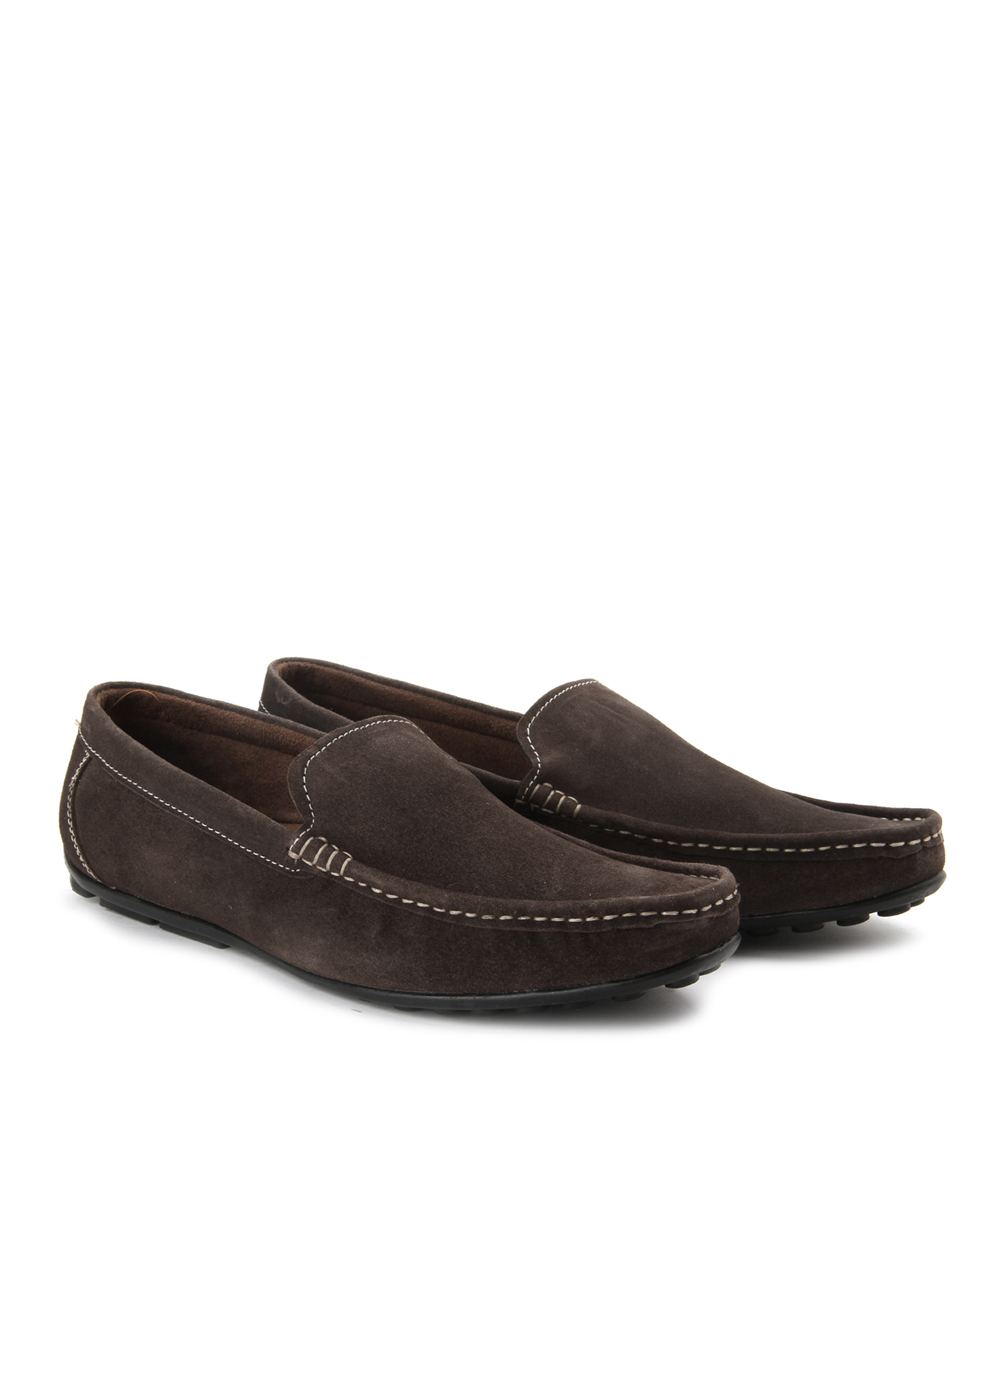 Andrew Scott Mod Mens Brown Loafers